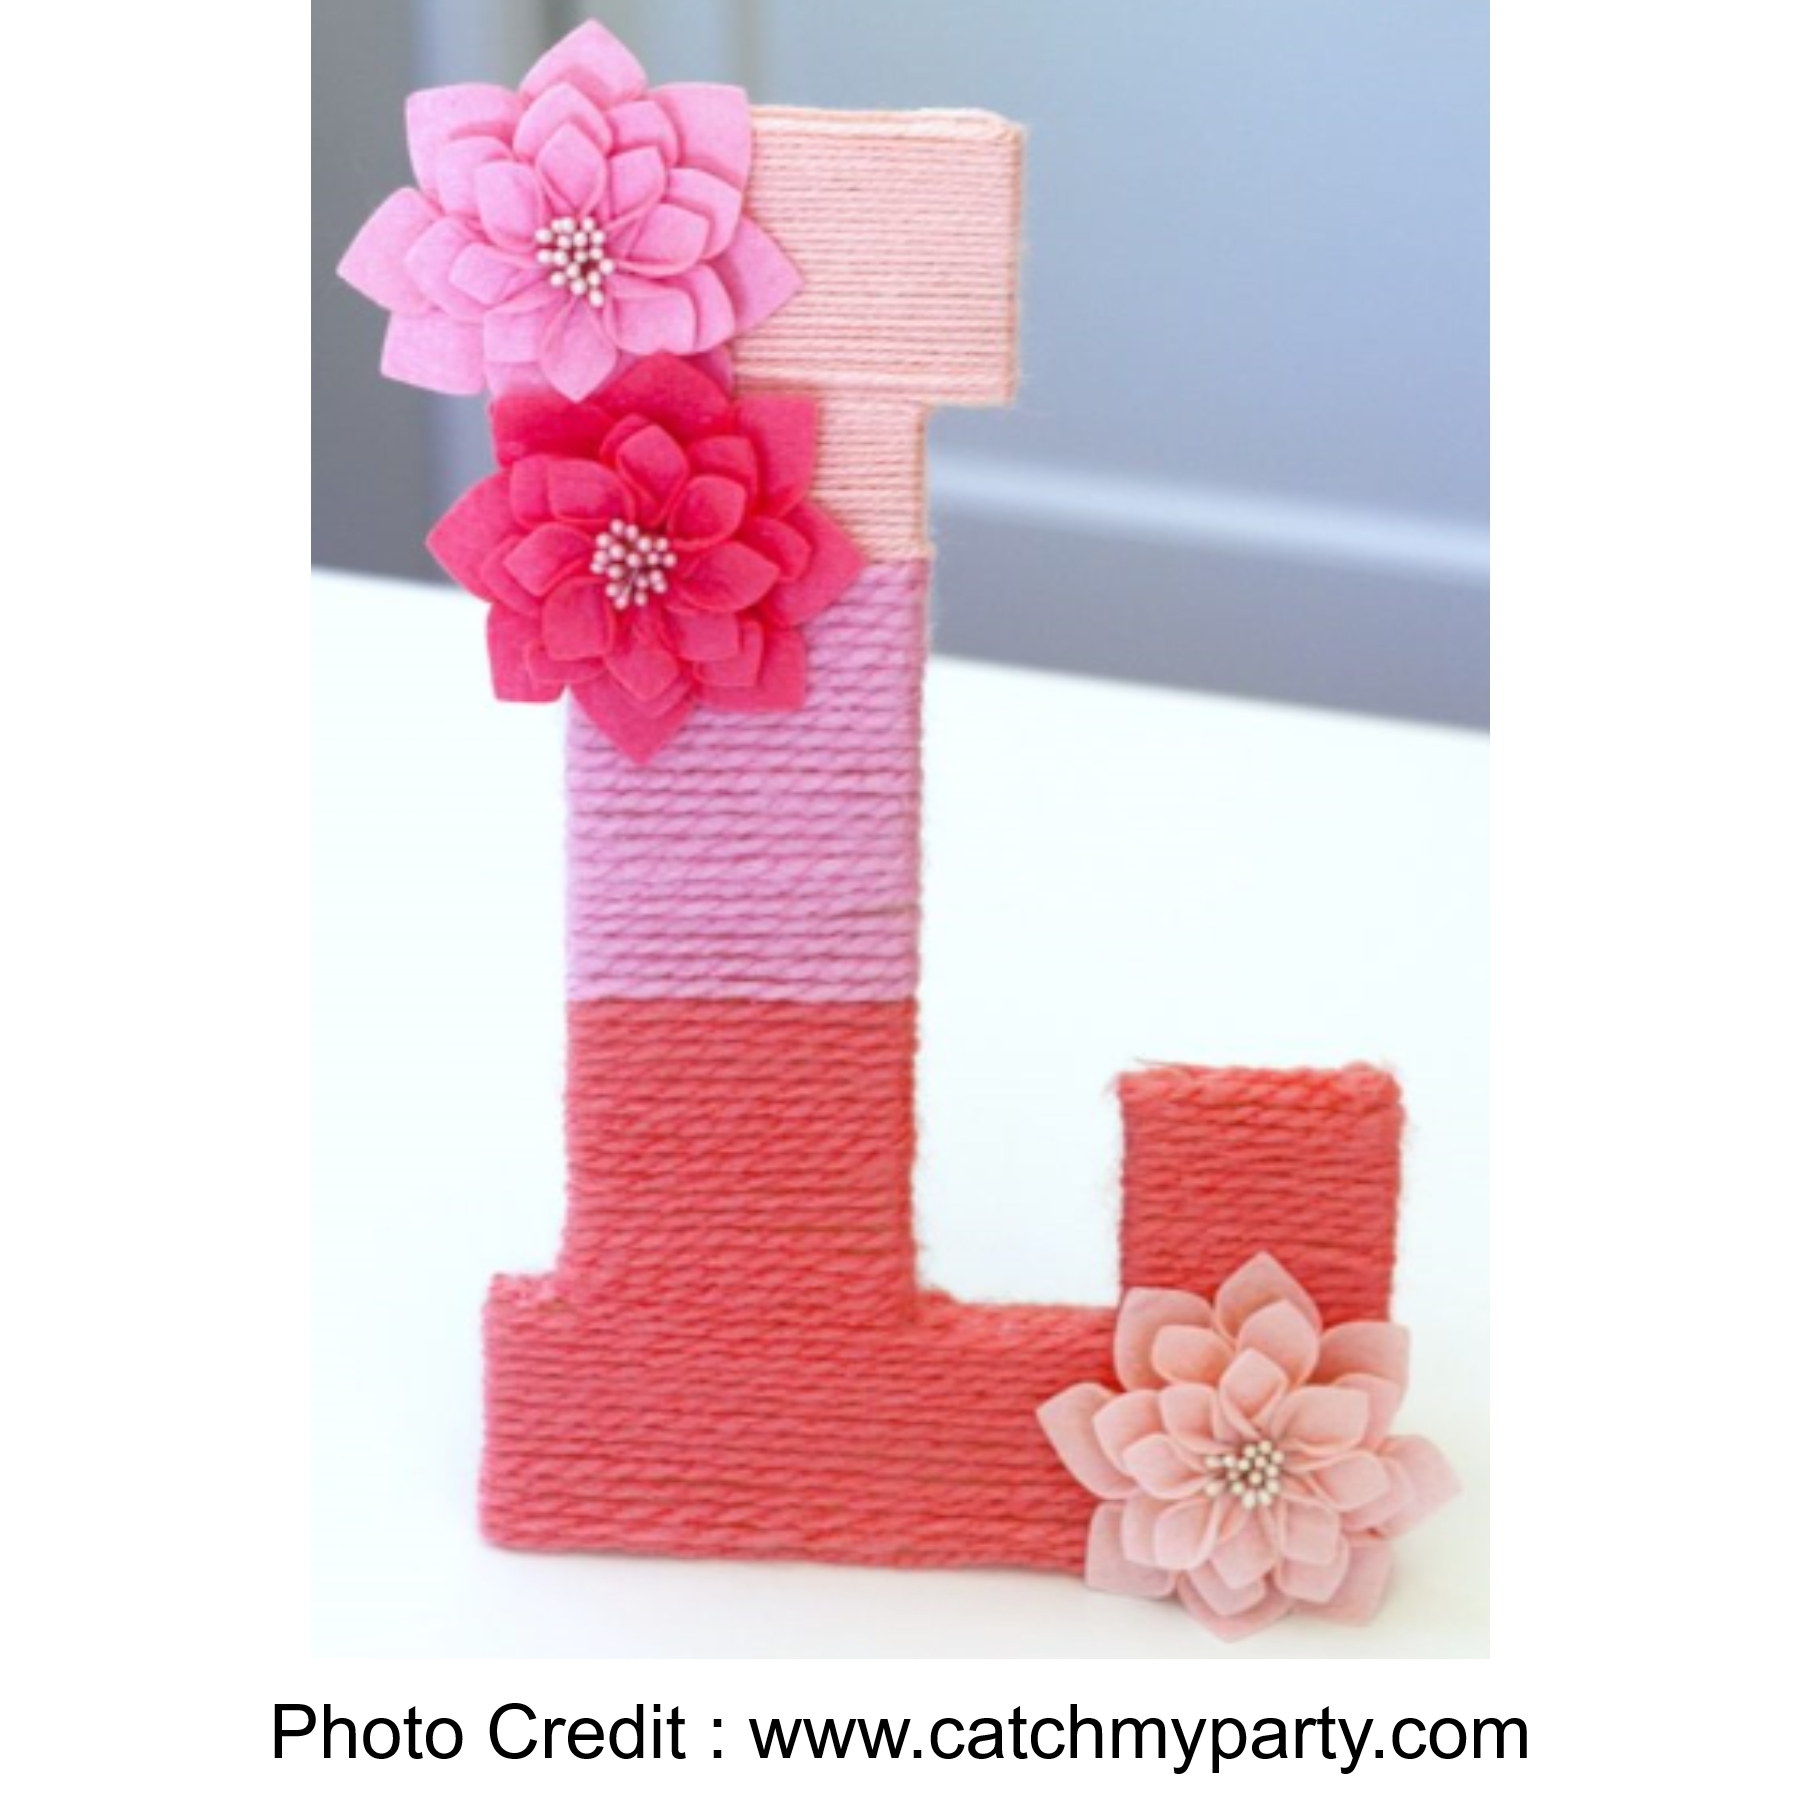 Yarn Wrapped Letters from Catch My Party